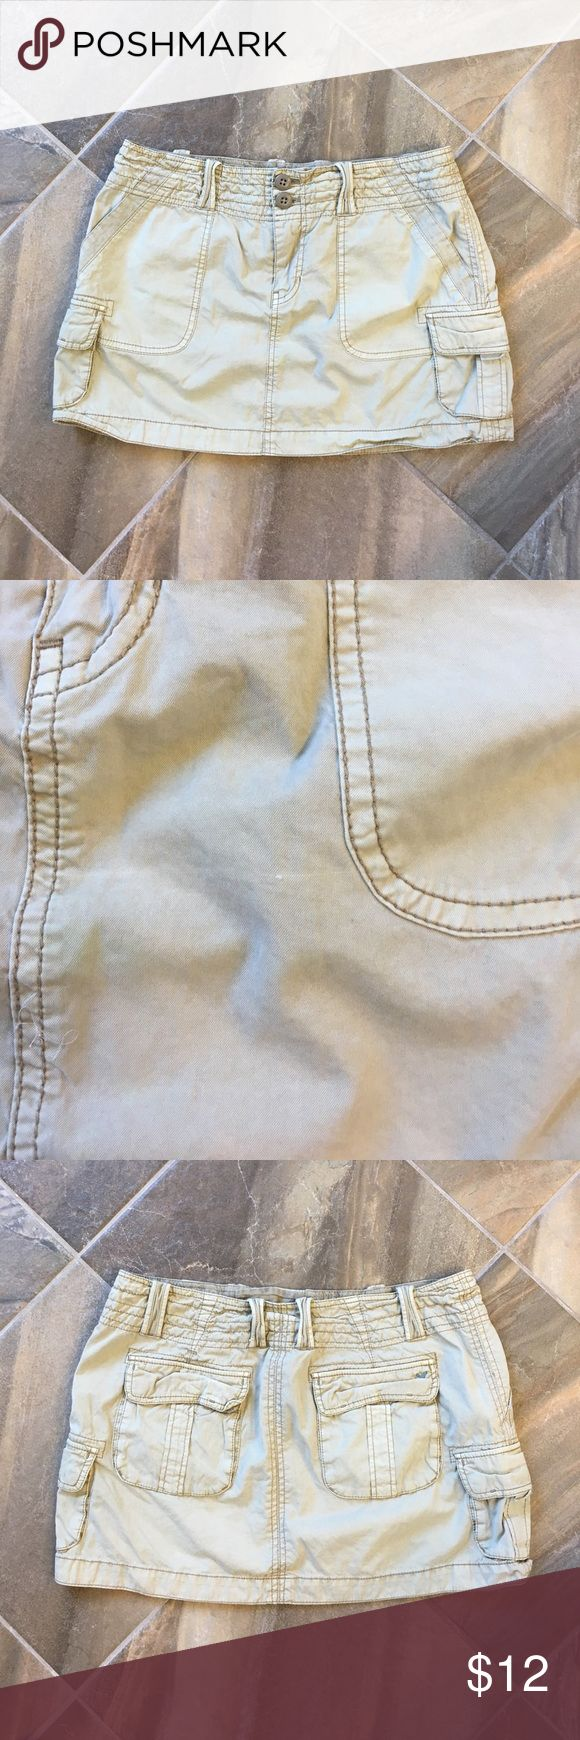 American Eagle Outfitters Skirt Great condition apart from tiny snag on front (pictured) :) Bundle only please :) American Eagle Outfitters Skirts Mini